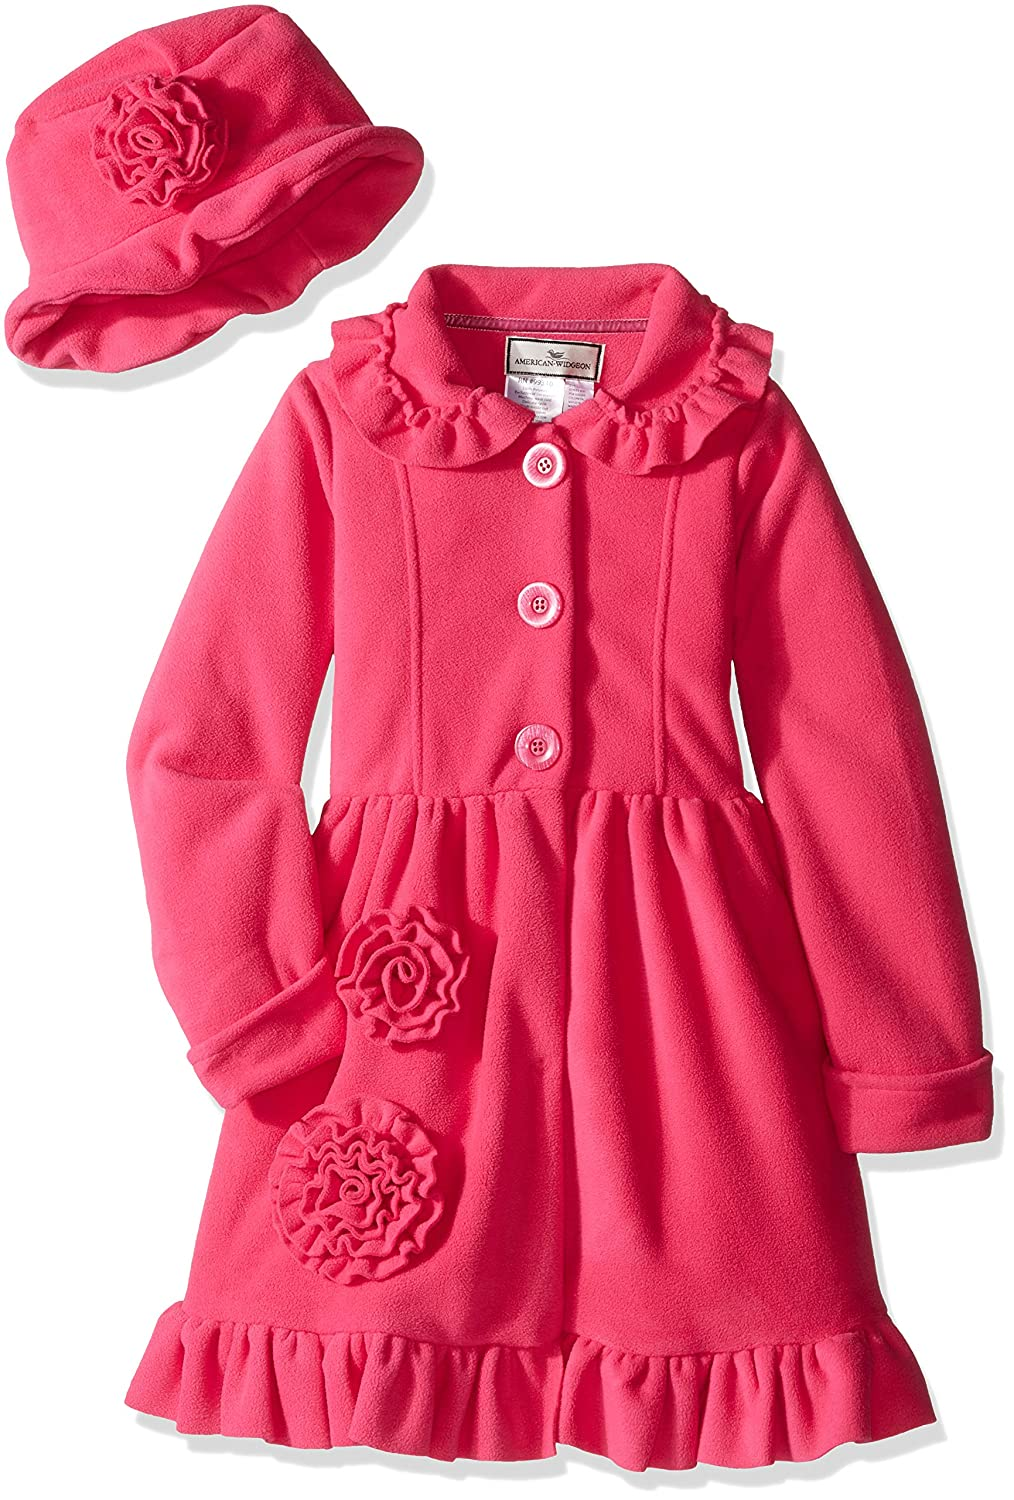 Widgeon Girls Button Front Bell Coat with Hat